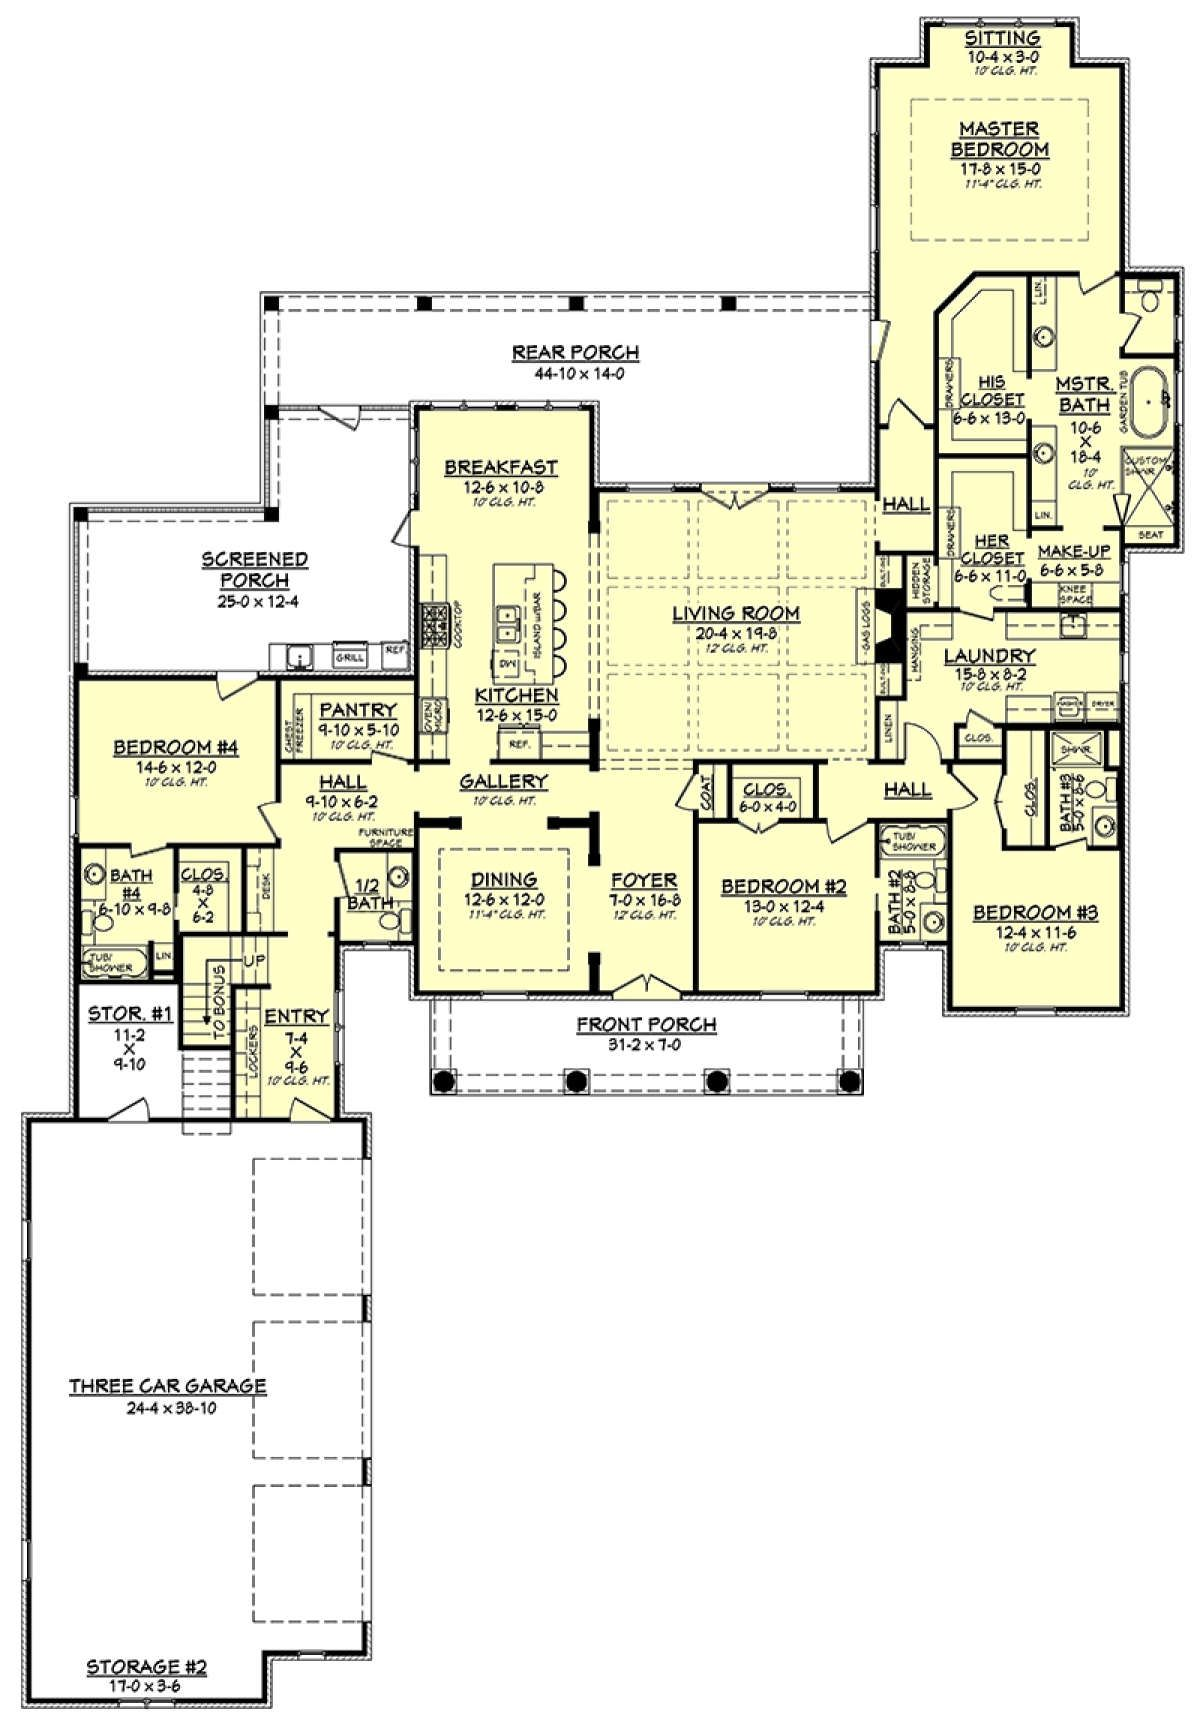 House Plan 041 00129 European Plan 3 360 Square Feet 4 Bedrooms 4 5 Bathrooms In 2020 House Plans House Floor Plans Bedroom Floor Plans